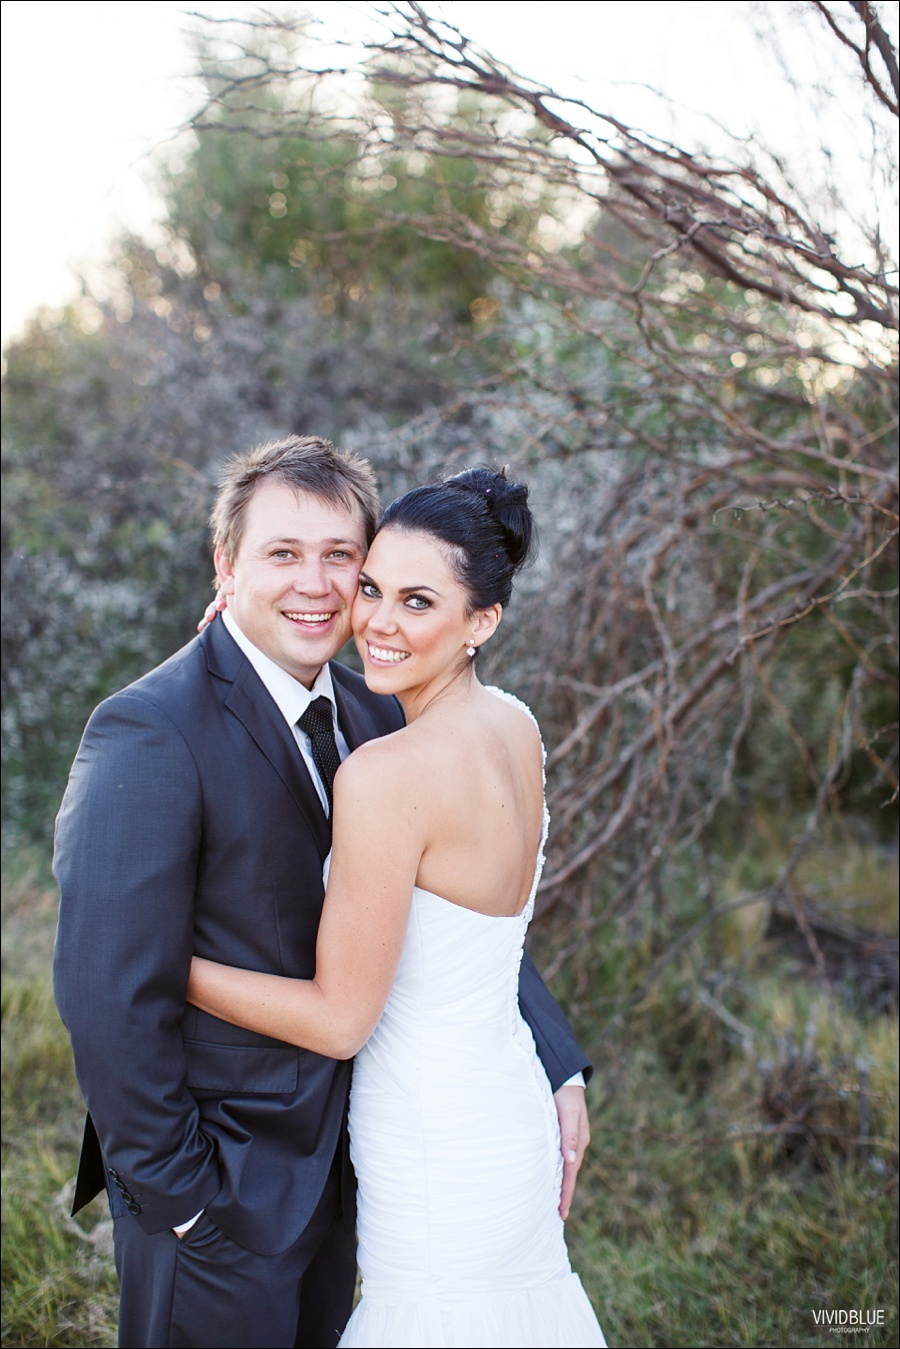 VividBlue-louis-christa-wedding-upington-064